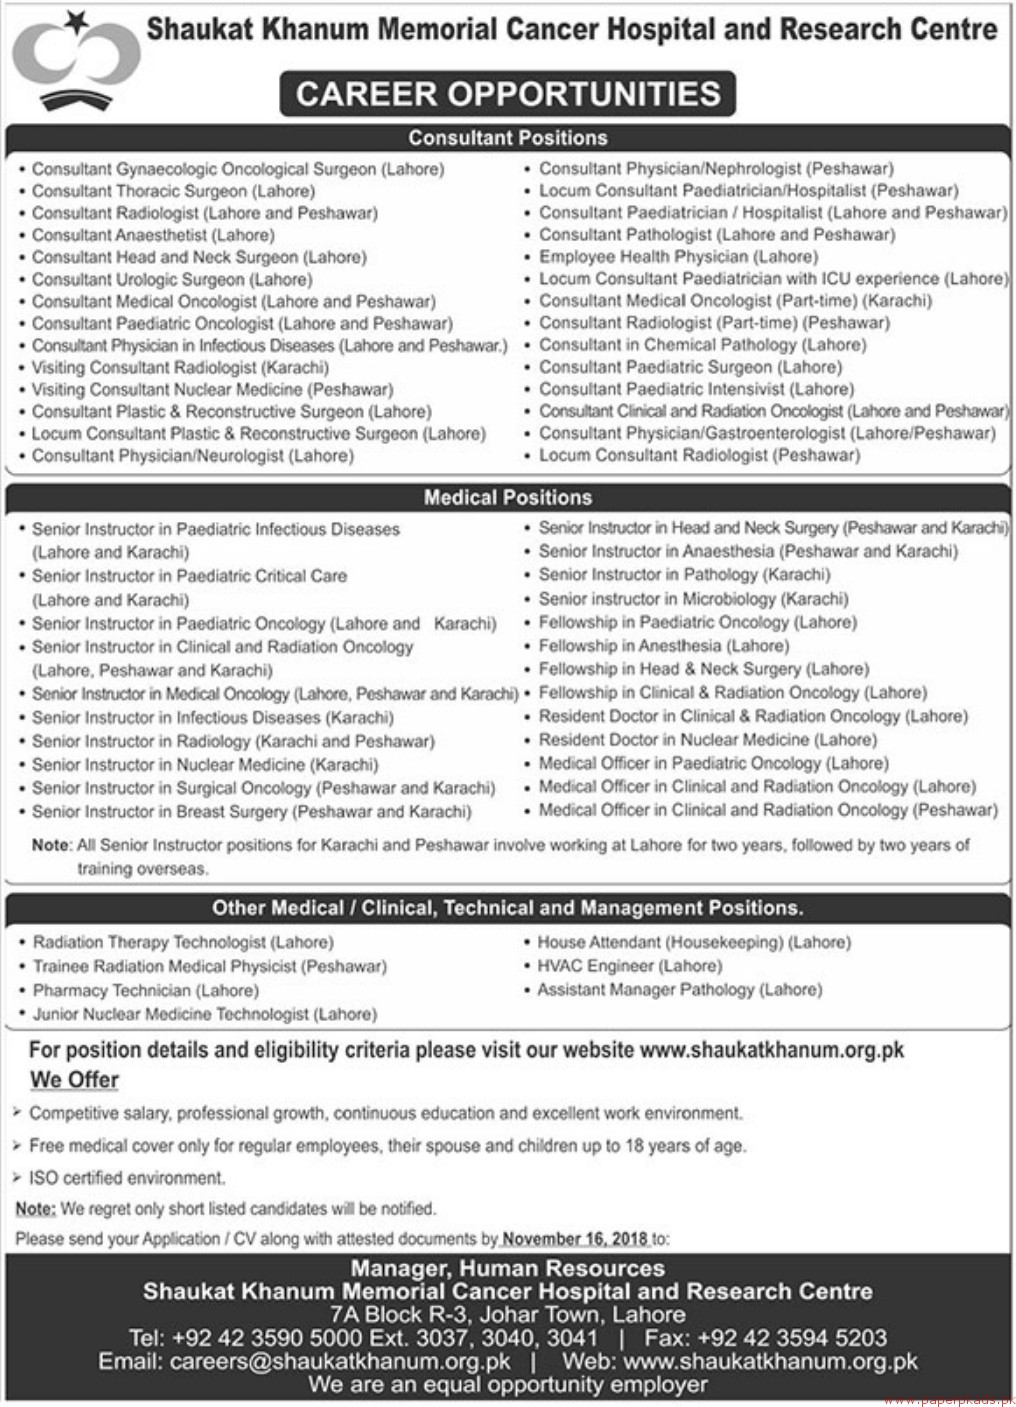 Shaukat Khanum Memorial Cancer Hospital & Research Centre Jobs 2018 Latest